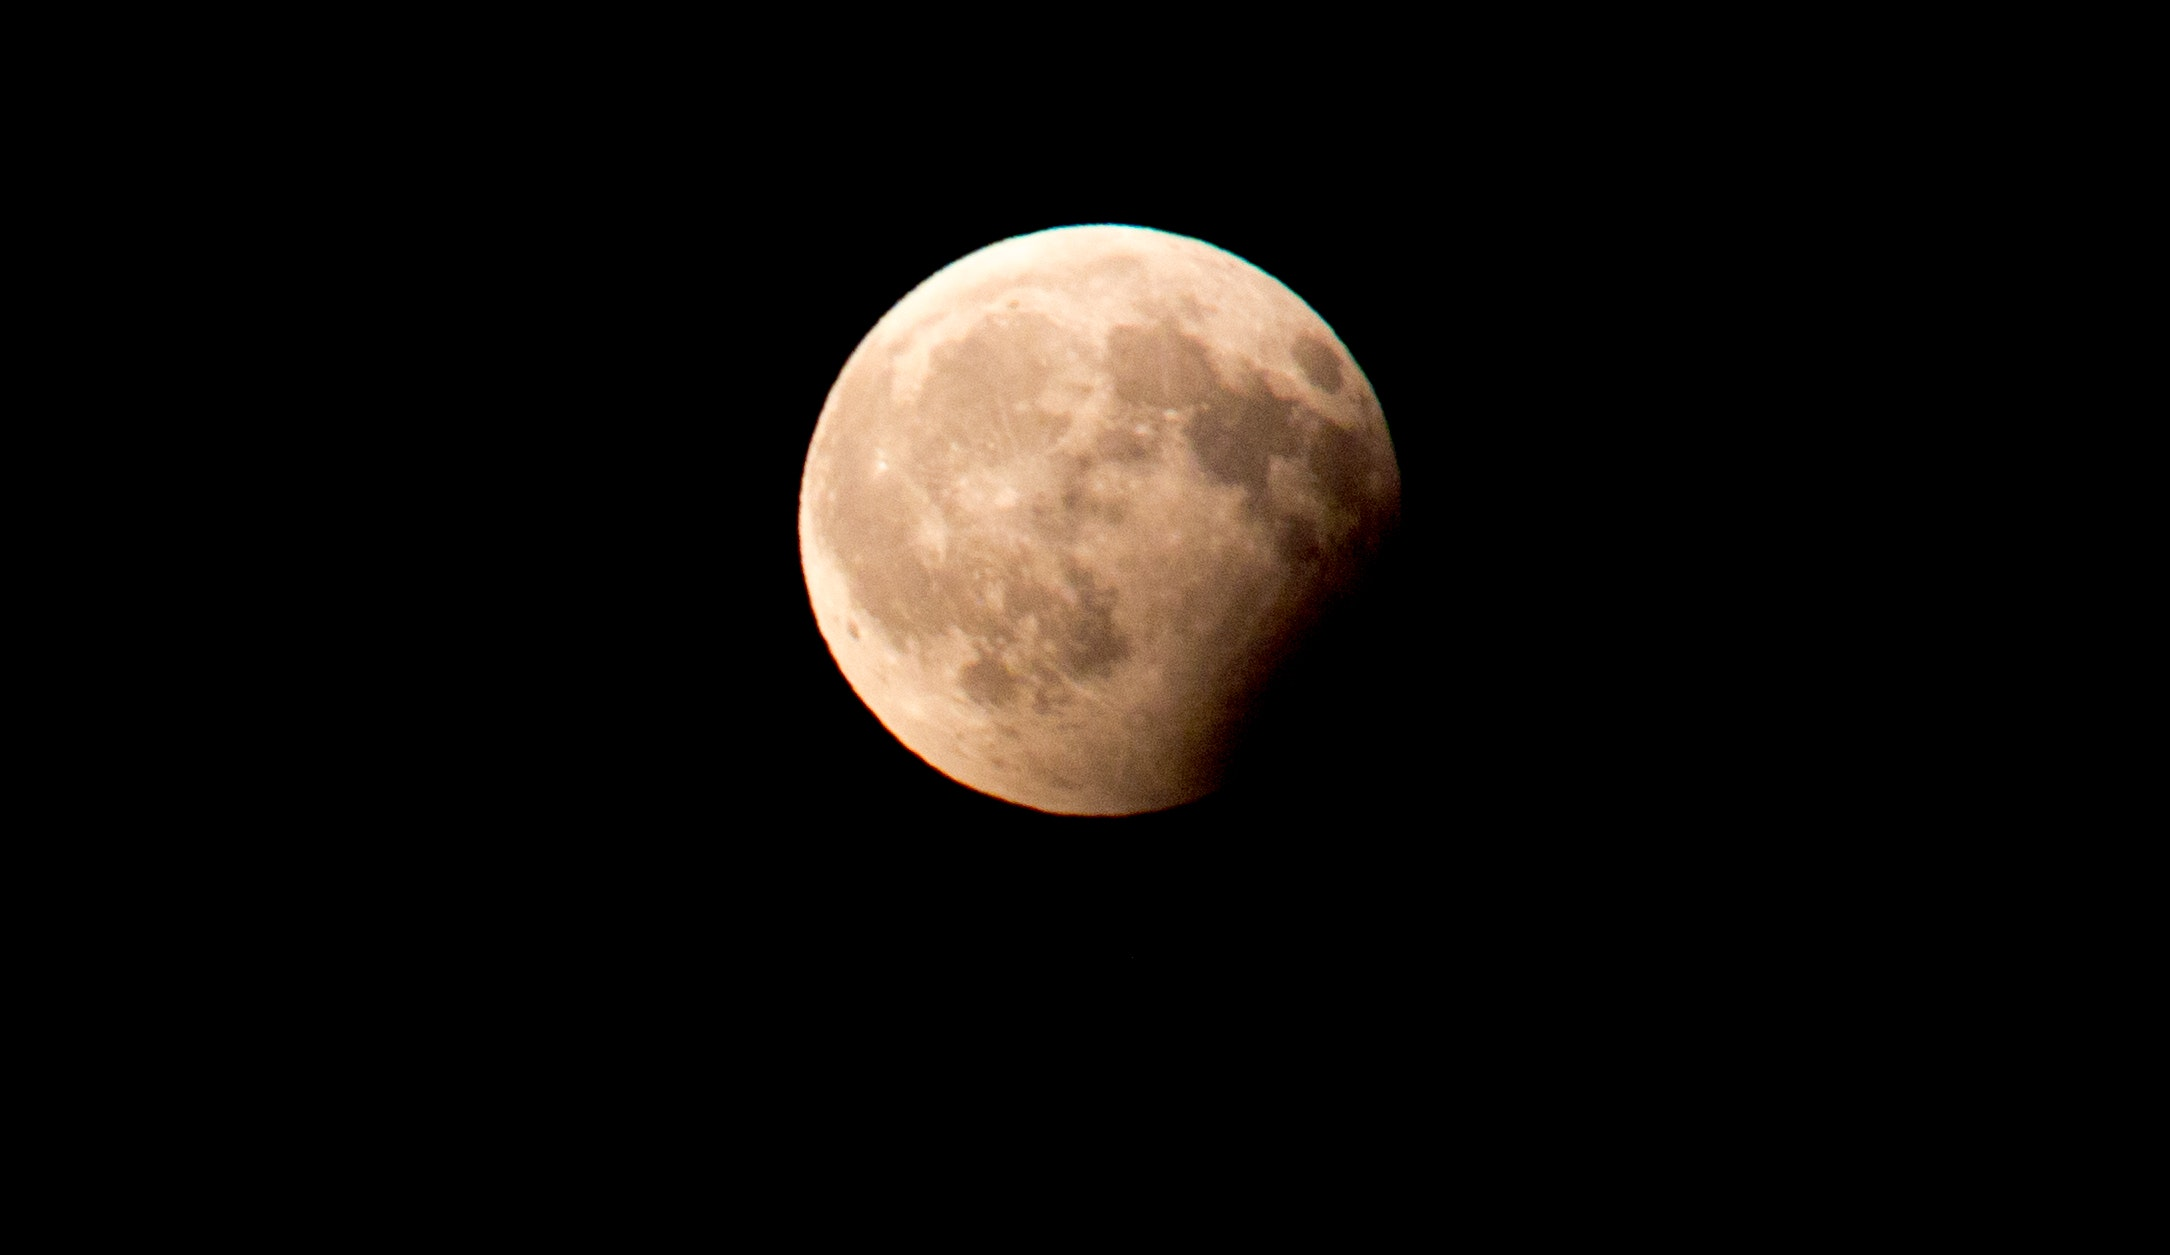 Free stock photo of lunar eclipse